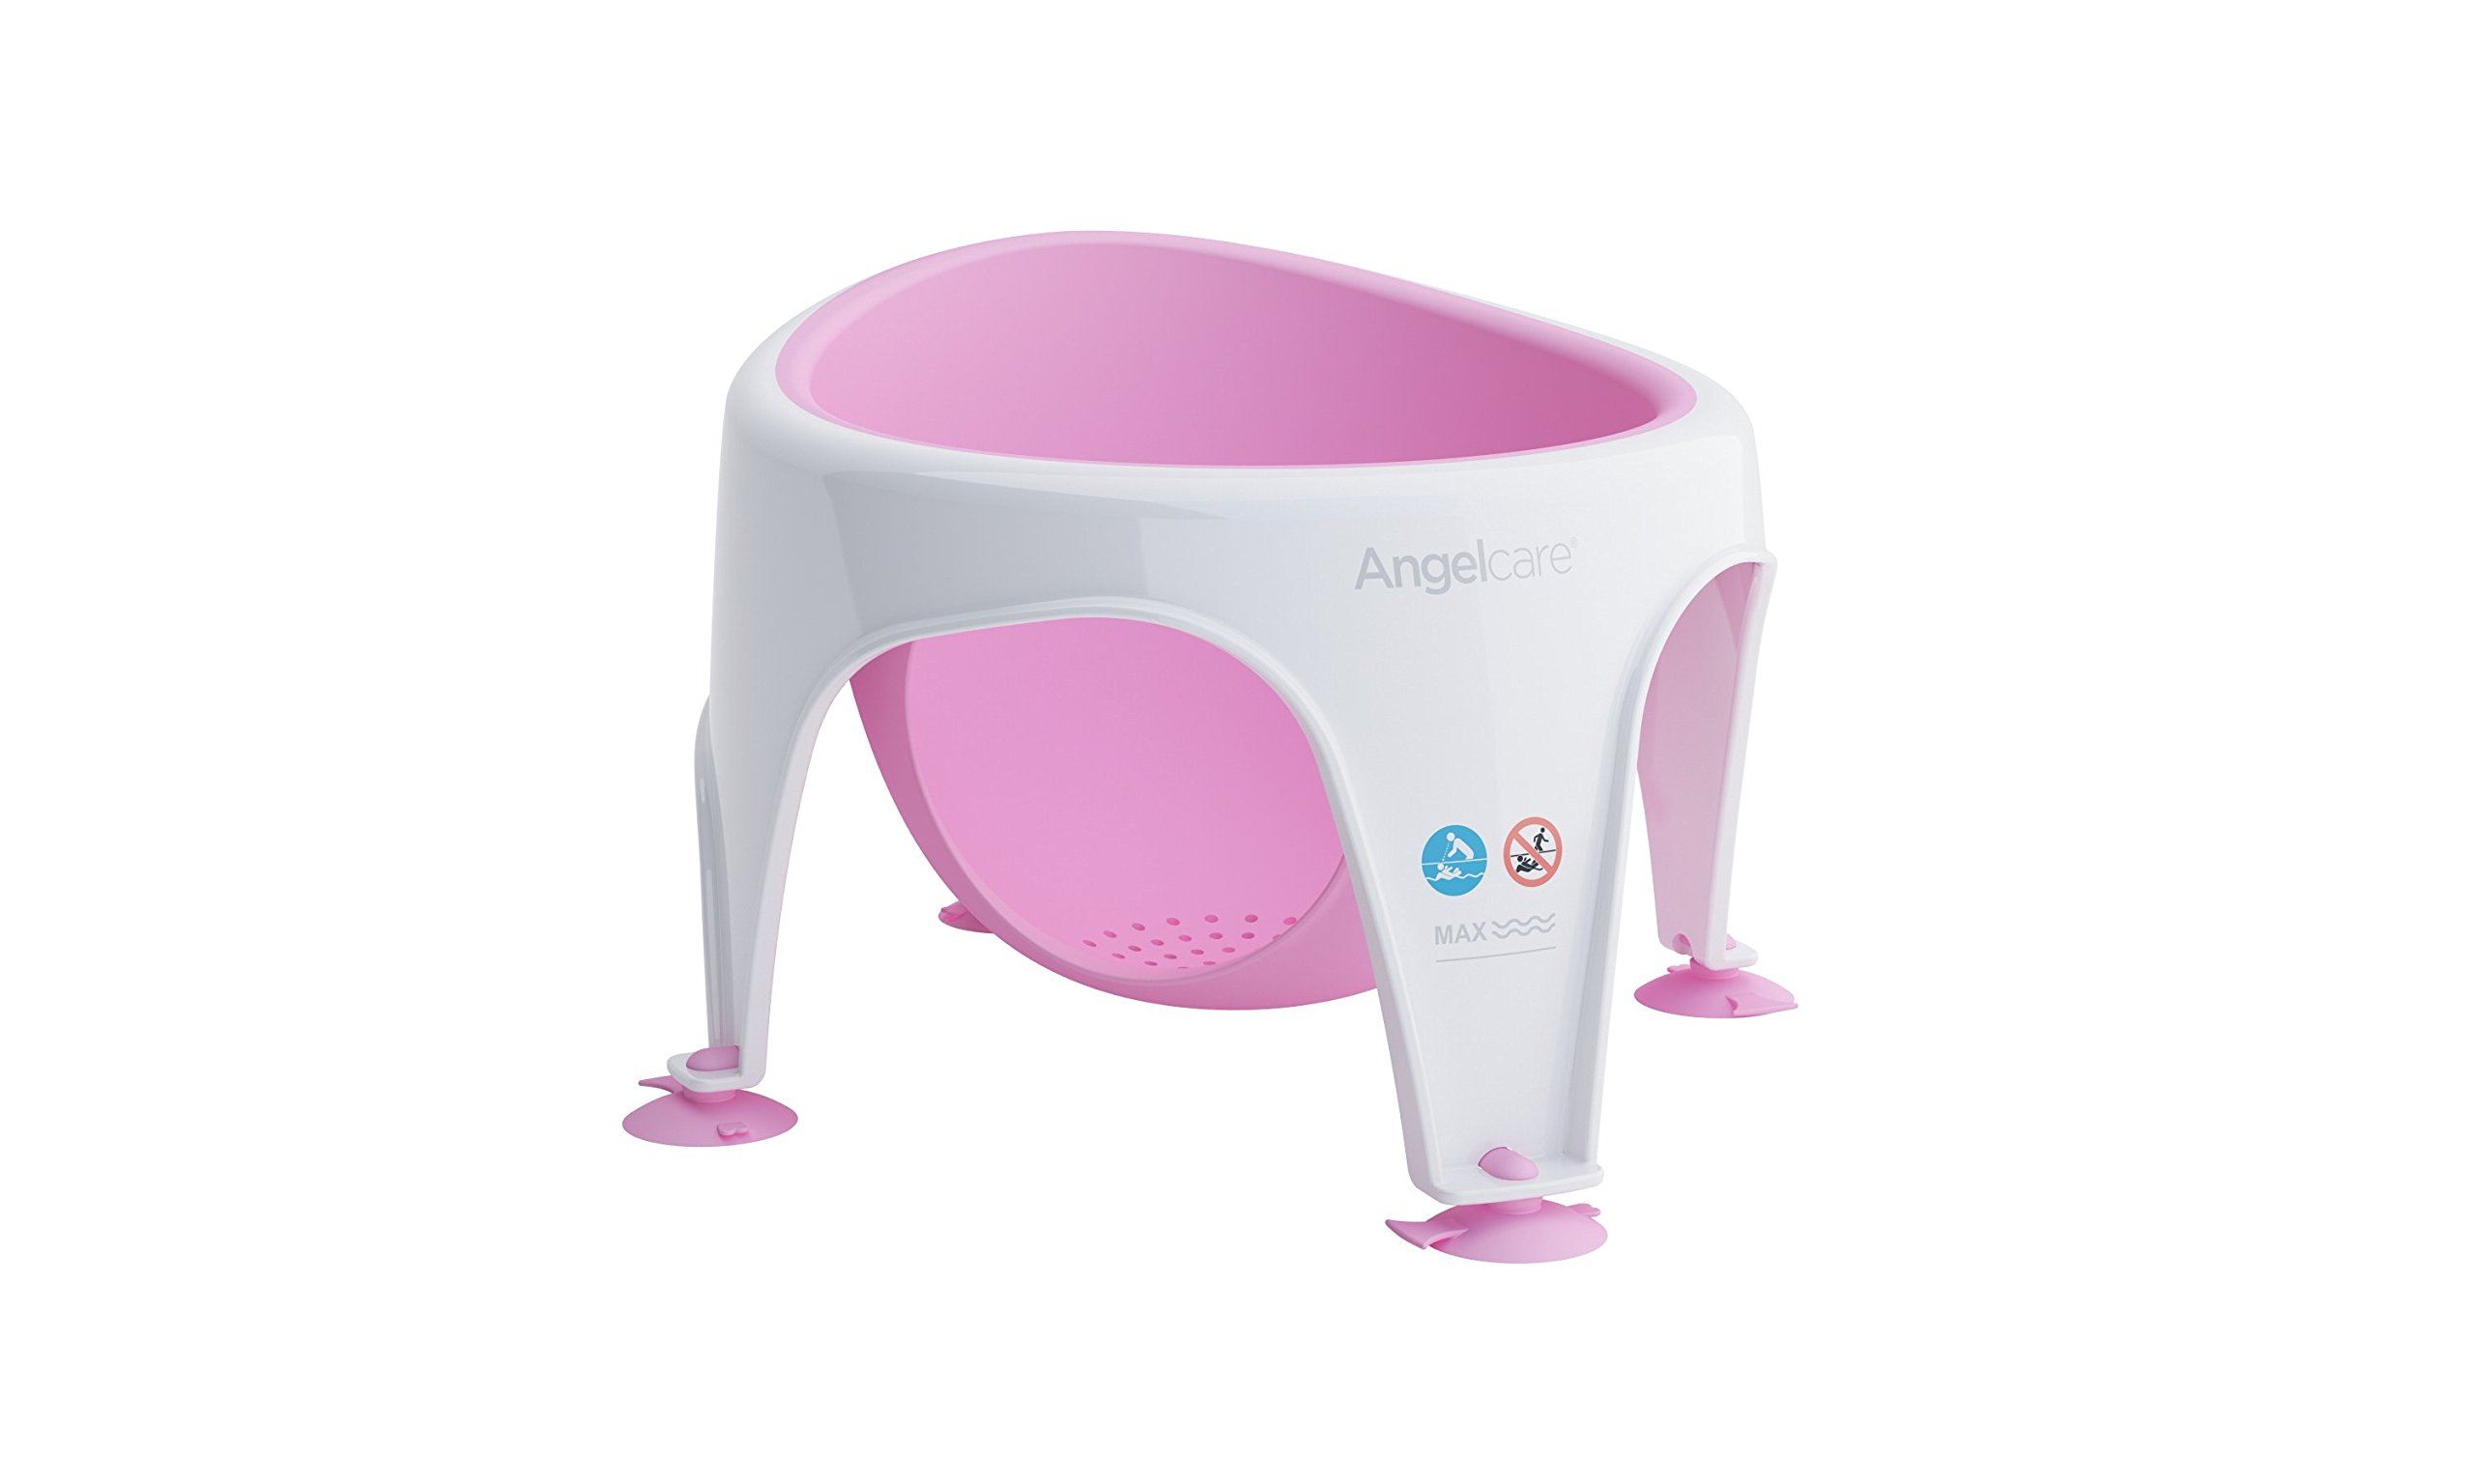 Angelcare Soft Touch Bath Seat (Pink) 689998351389 | eBay